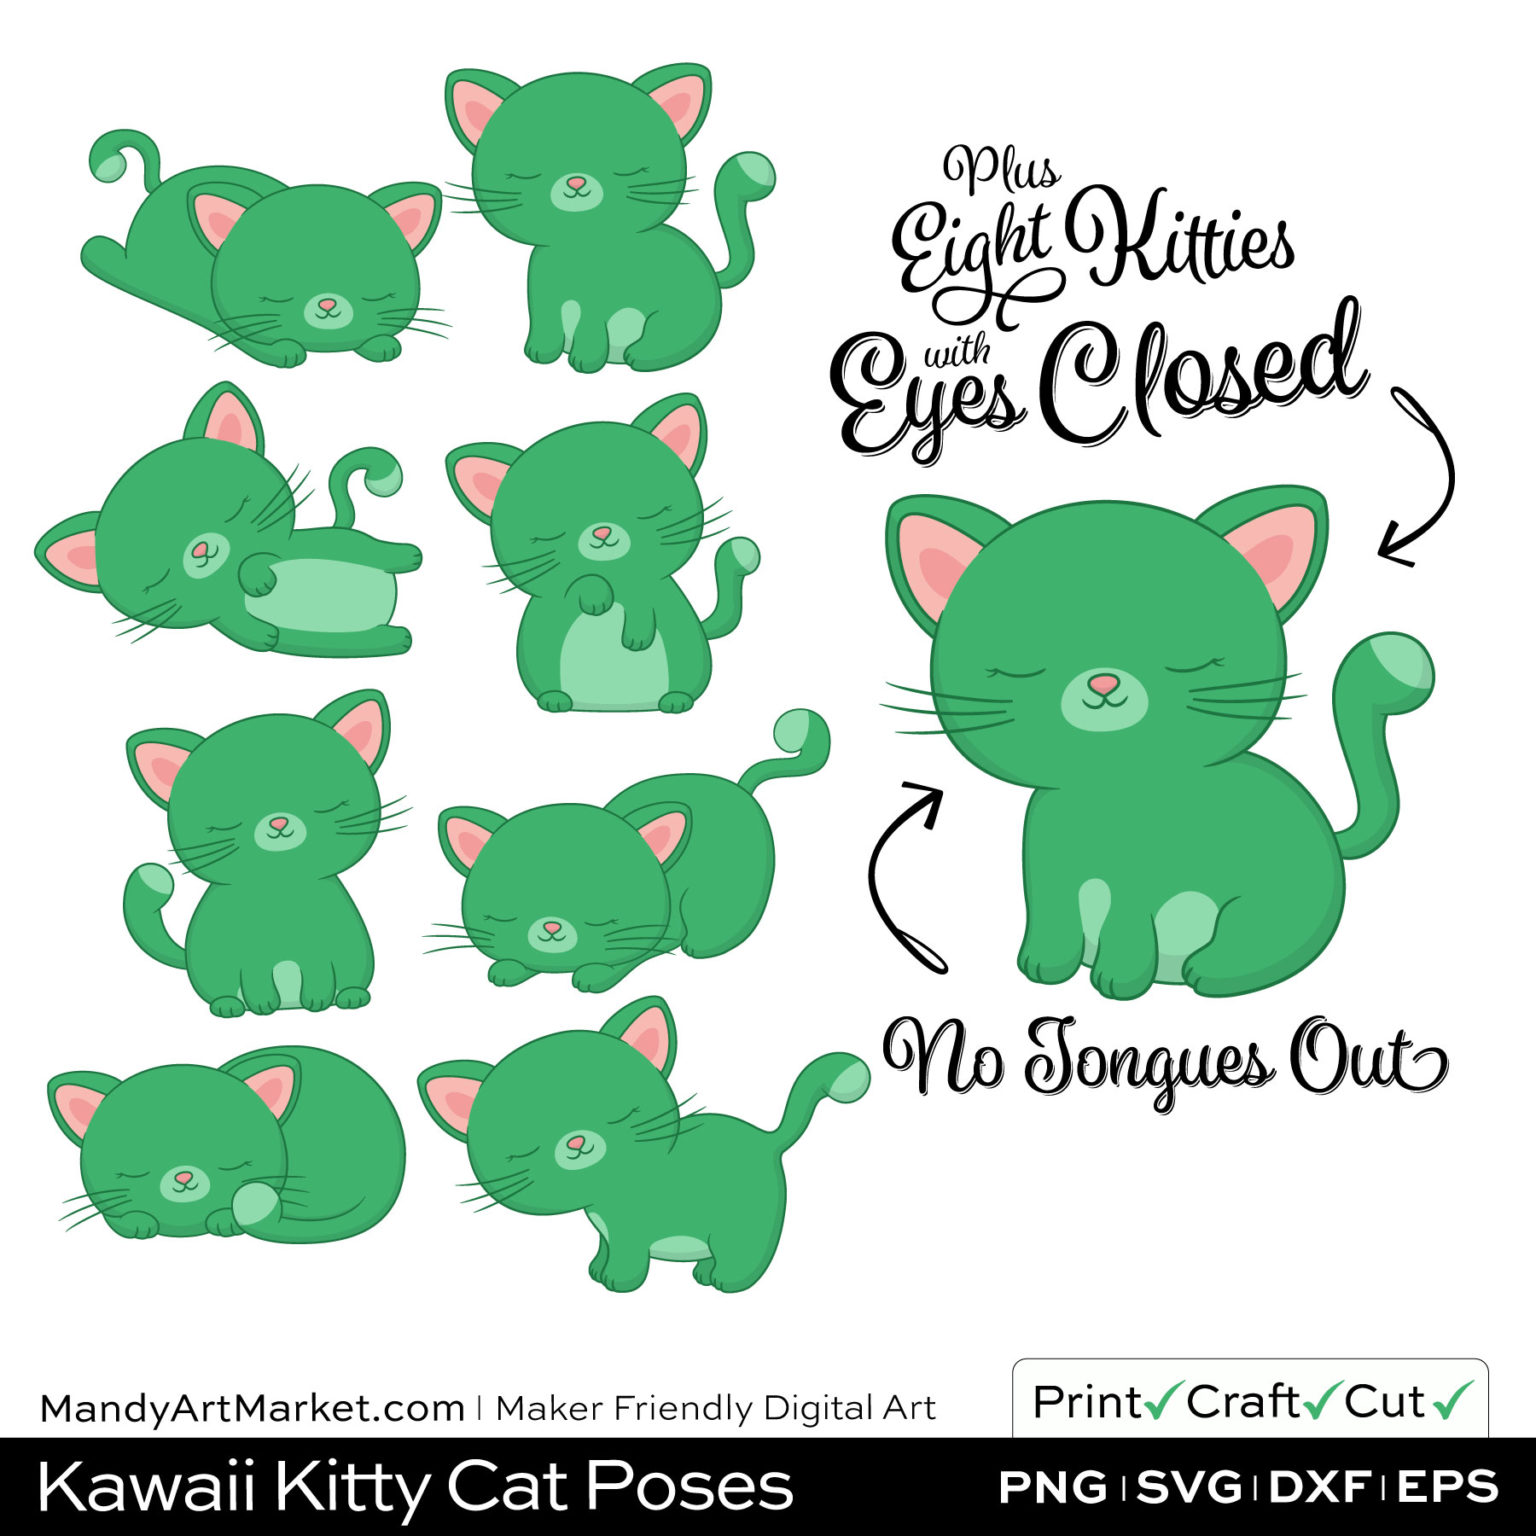 Kelly Green Kawaii Kitty Cat Poses Clipart PNGs Included in Download